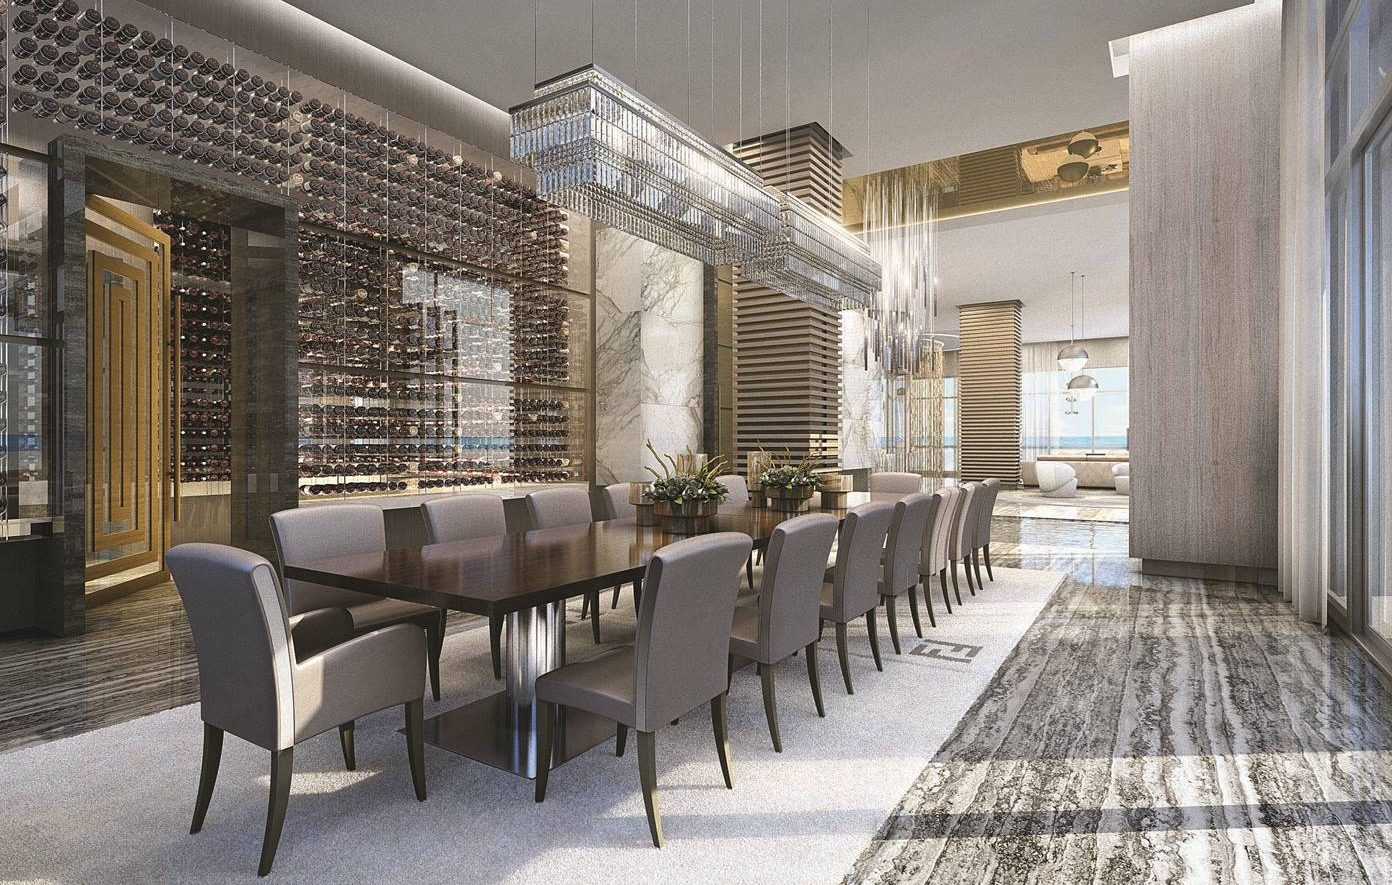 Interior rendering of the Mansions at Acqualina